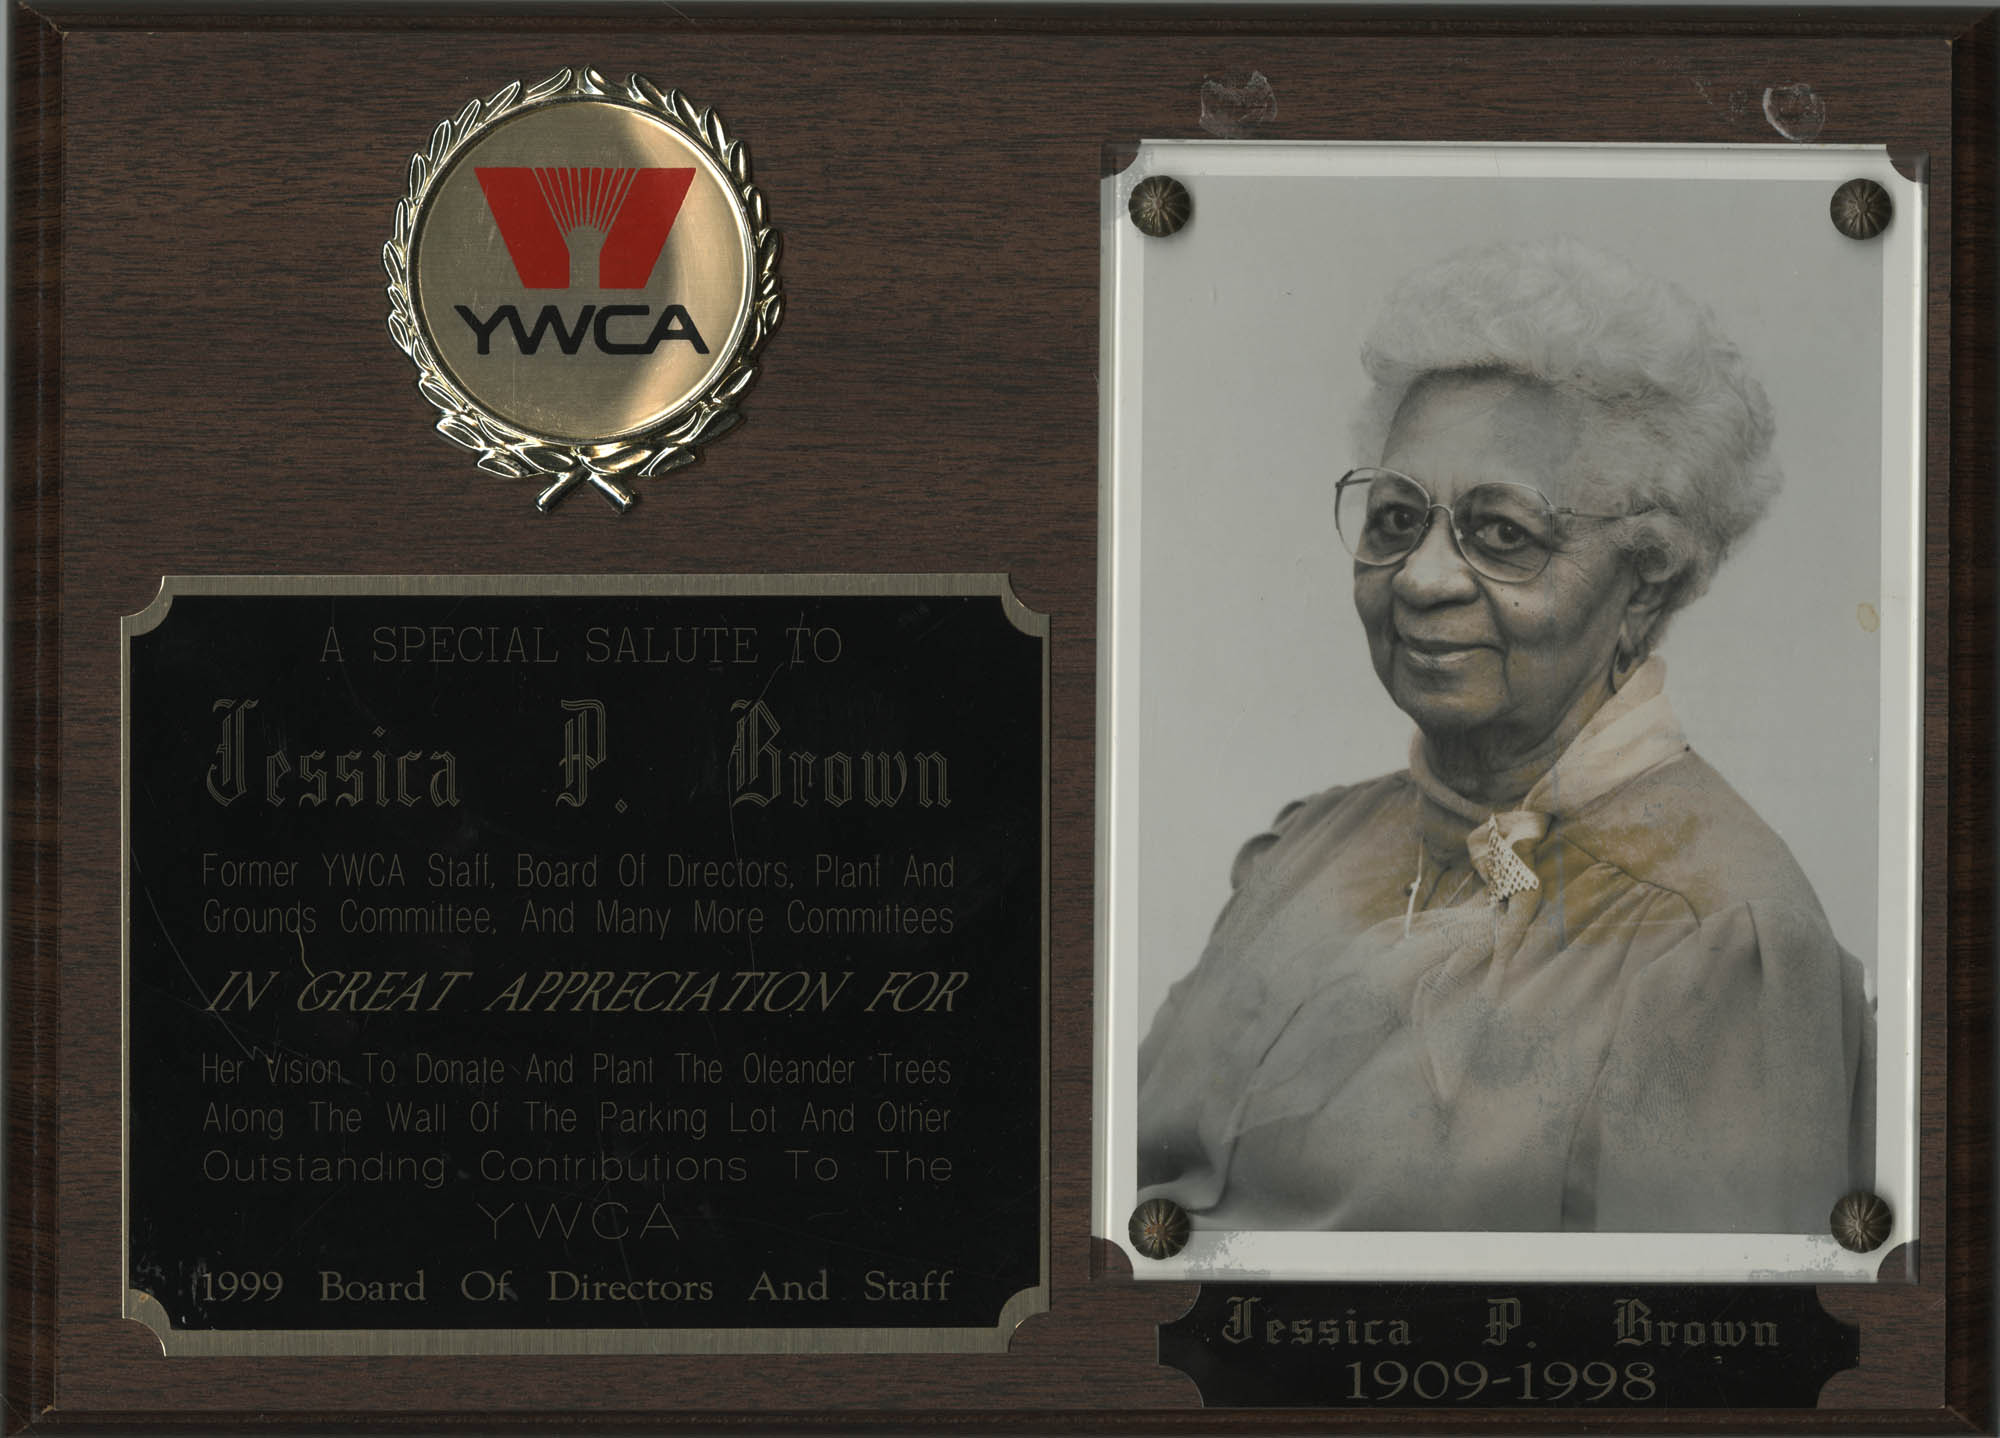 Plaque, Y.W.C.A. of Greater Charleston Award for Jessica P. Brown